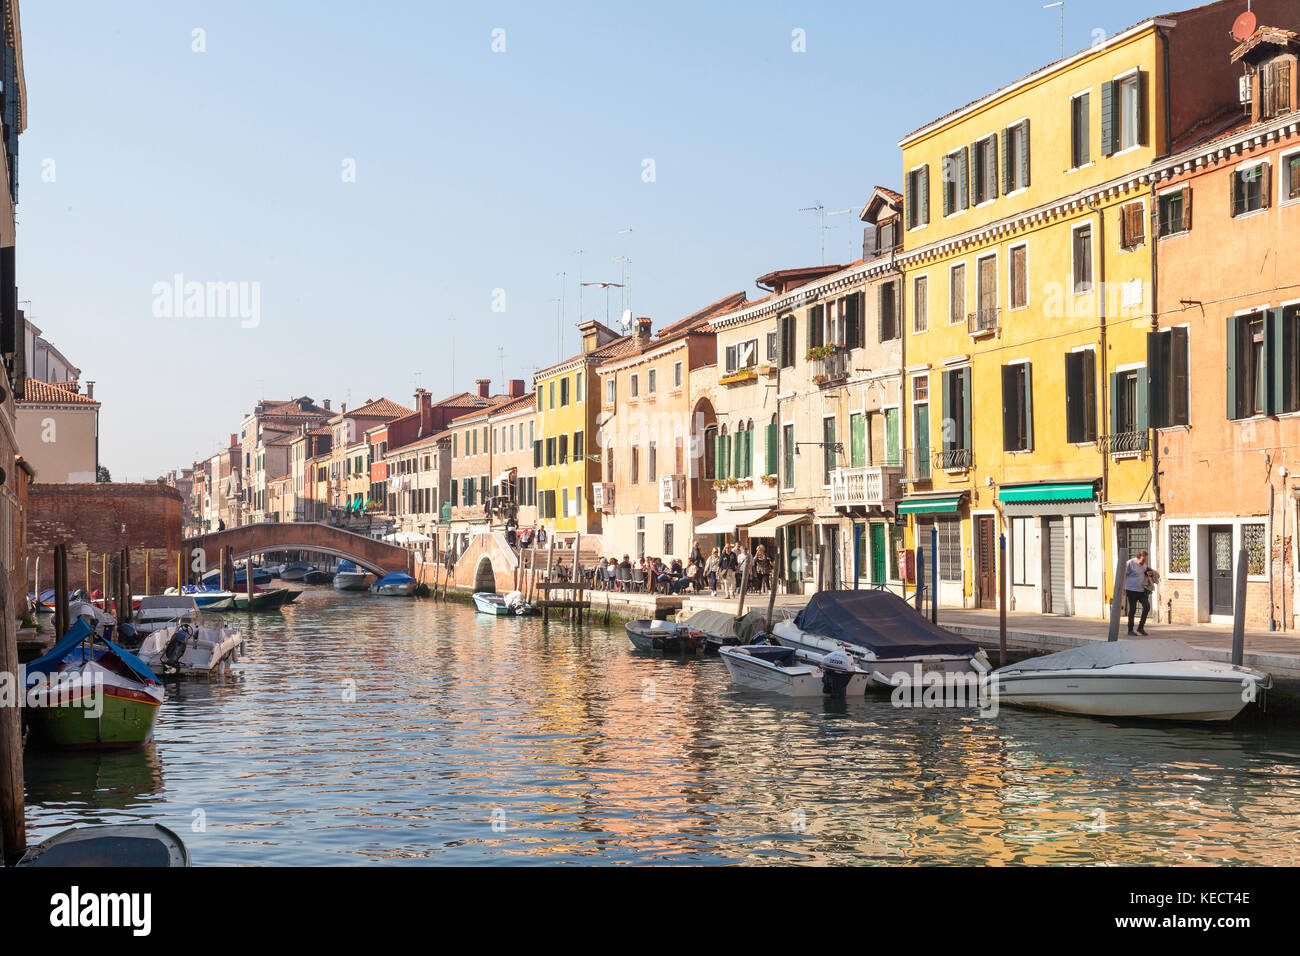 Evening light on Fondamenta Ormisini, Cannaregio, Venice, italy with reflections in the water and locals and tourists - Stock Image